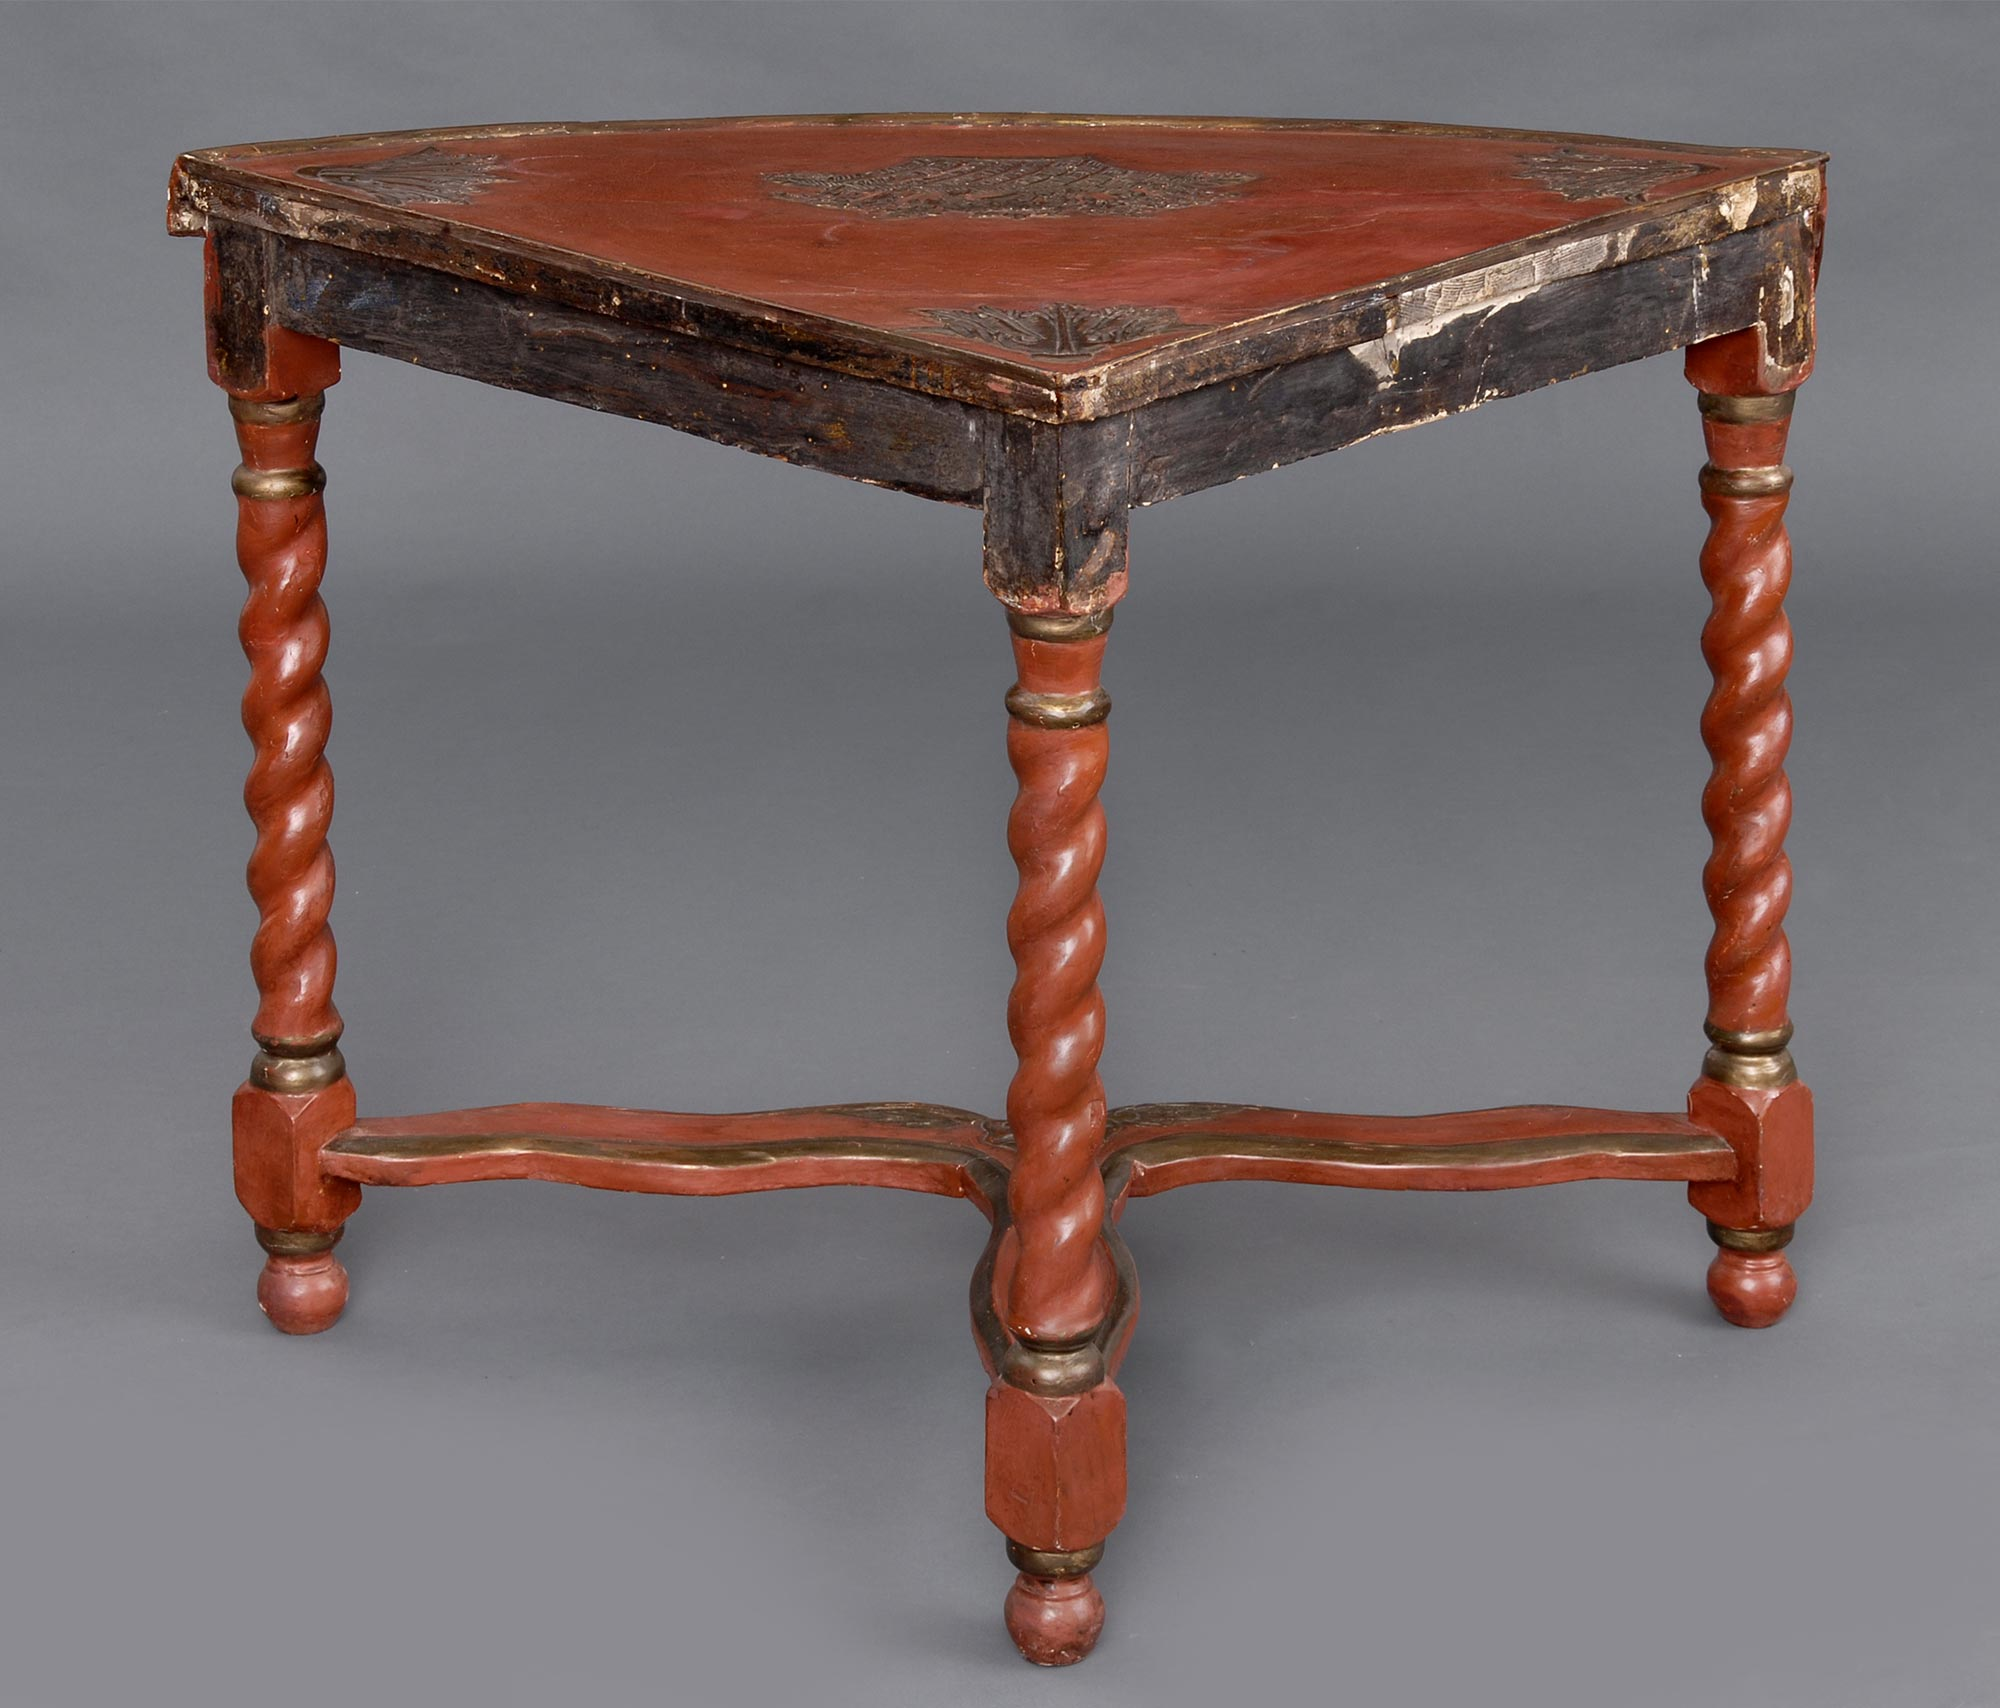 French Lacquer Antique Corner Table Antique Corner Tables